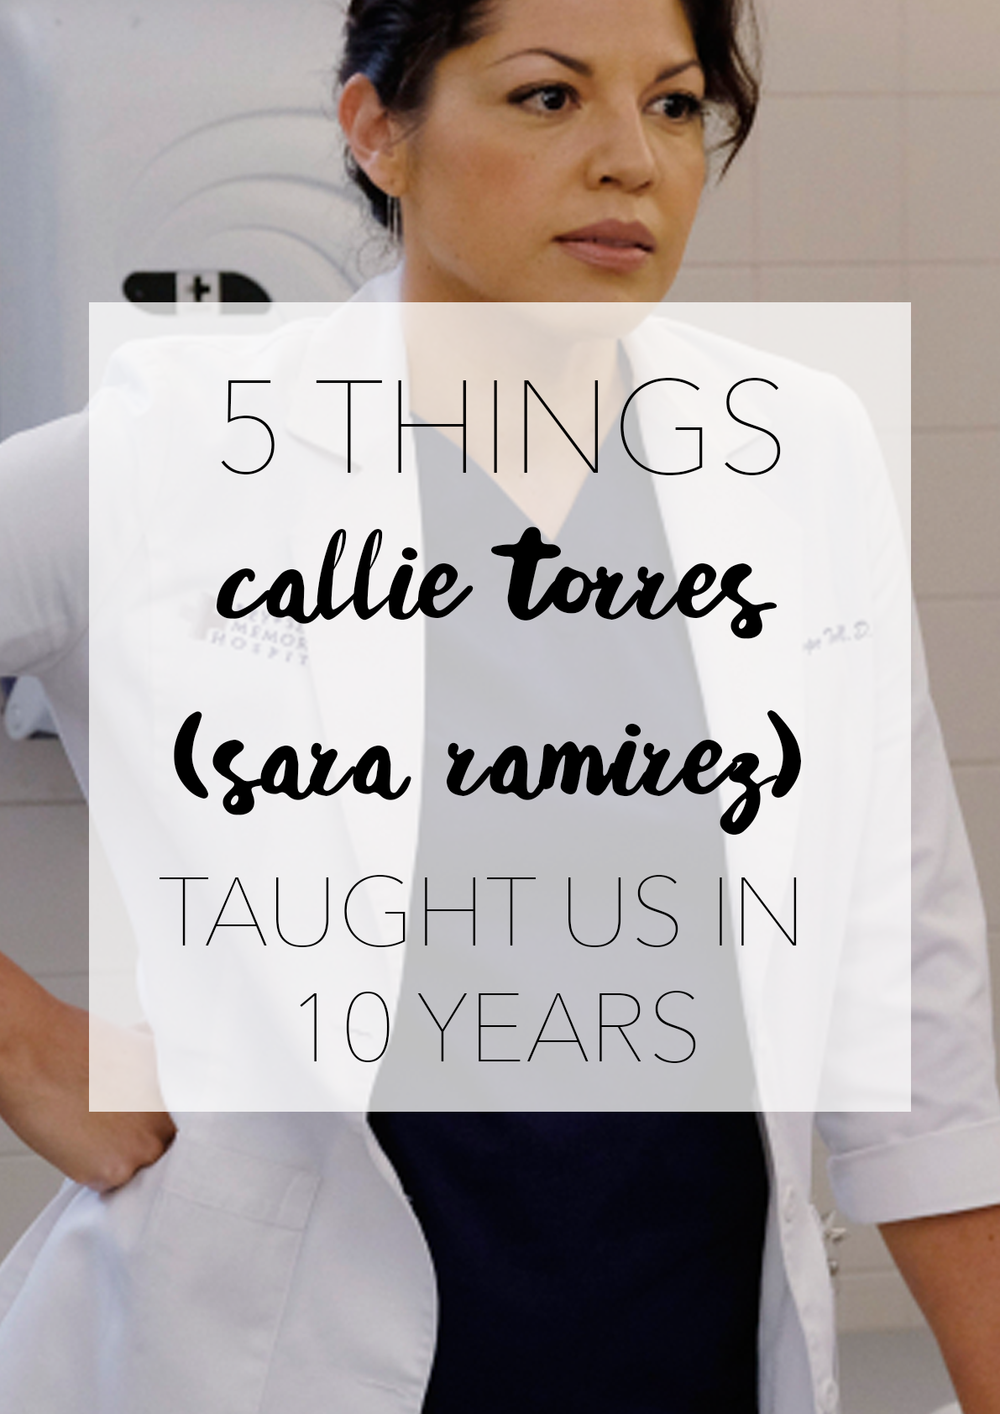 5 Things Callie Torres (Sara Ramirez) Taught Us in 10 Years